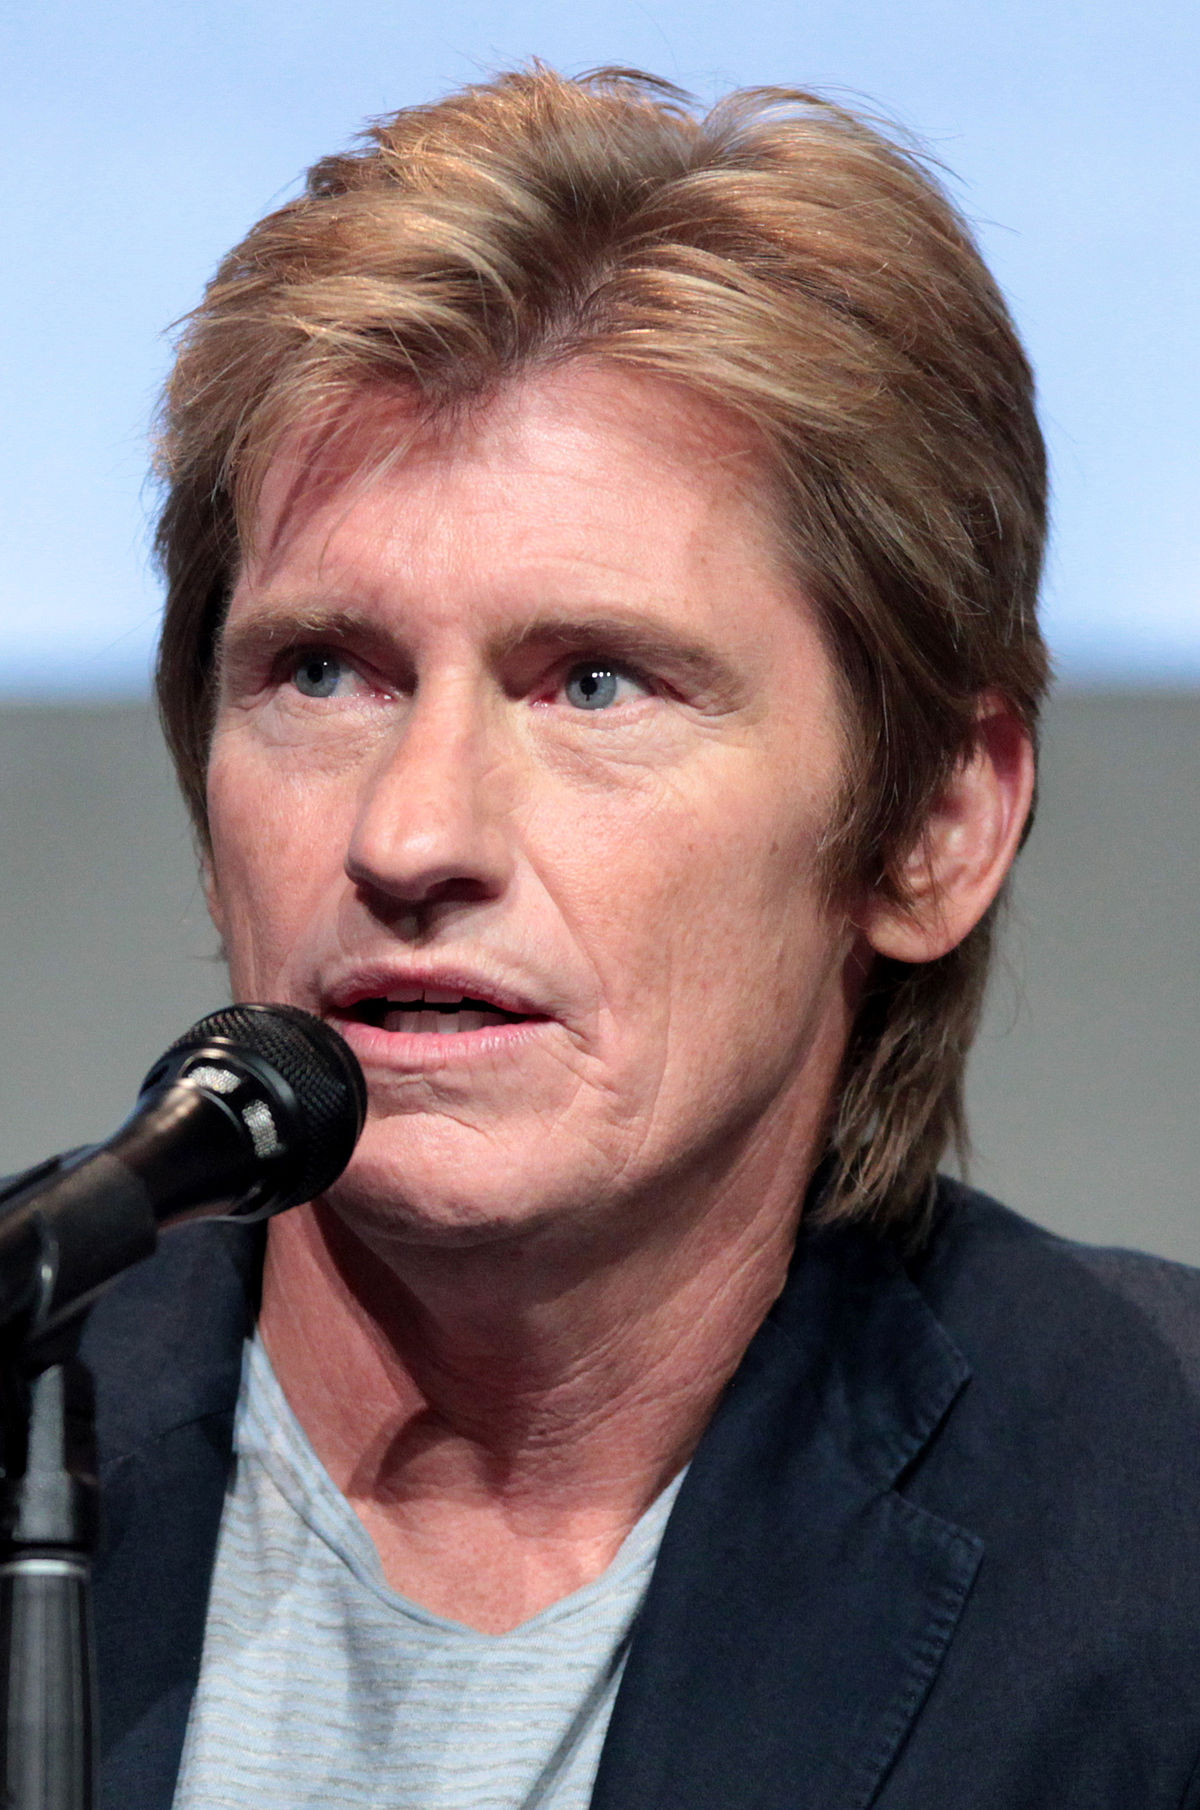 Denis Leary Wikipedia 1 8 Quot Stereo Plug Wiring Diagram